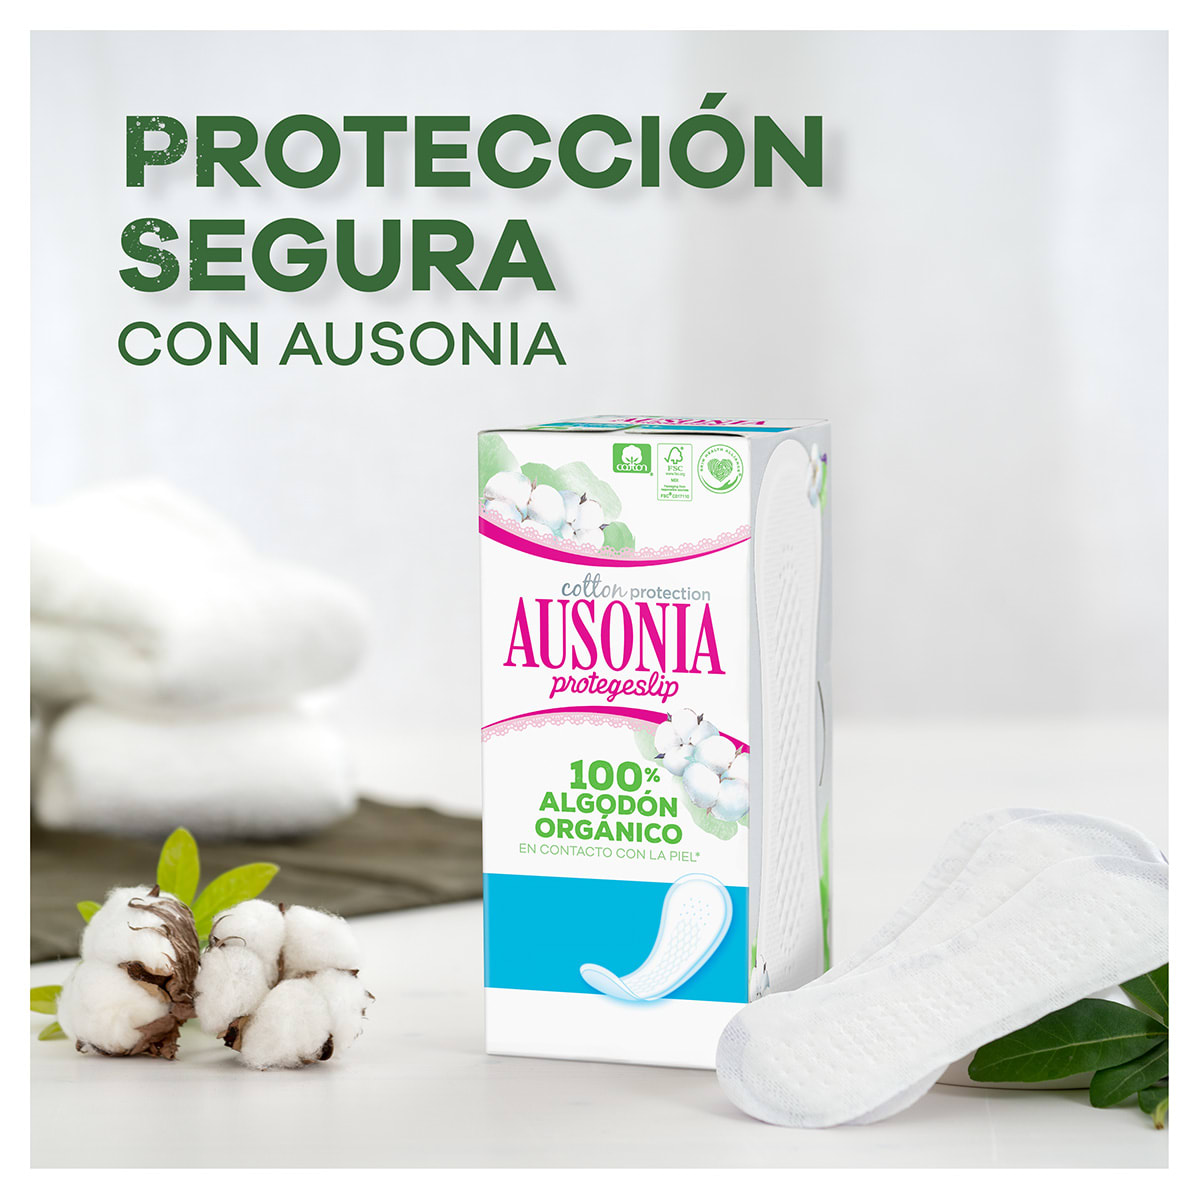 AUSONIA Cotton Protection Protegeslips